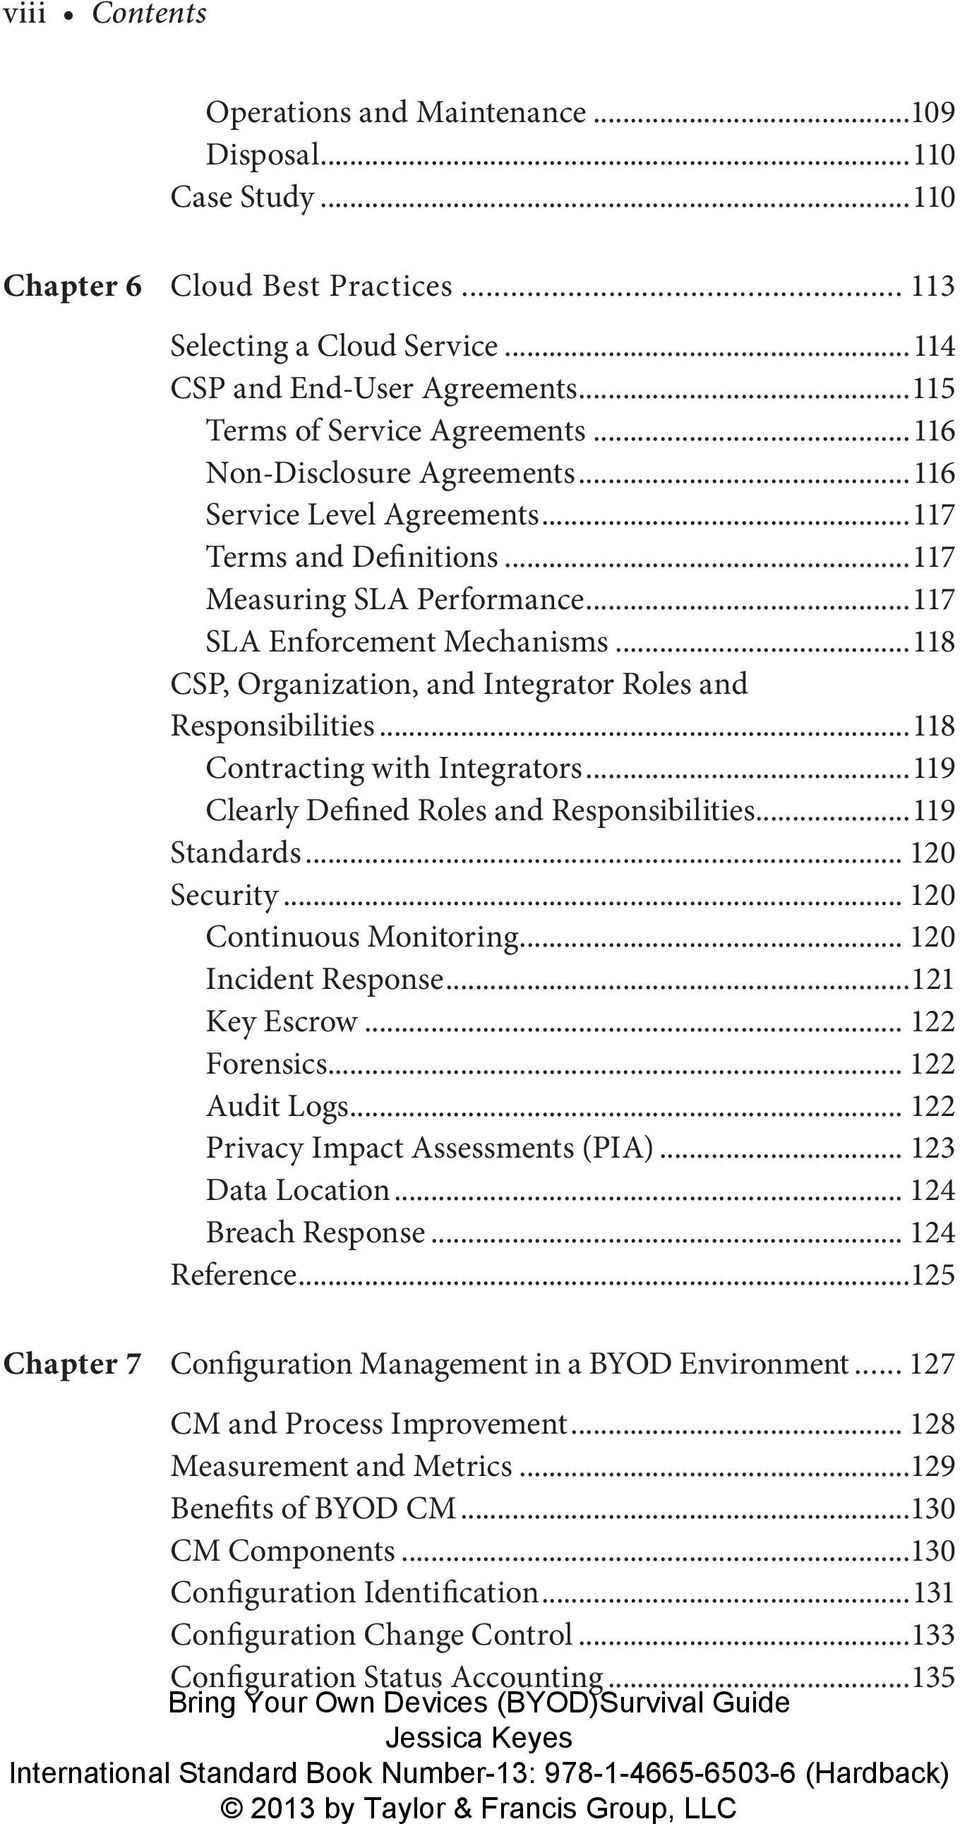 ..118 CSP, Organization, and Integrator Roles and Responsibilities...118 Contracting with Integrators...119 Clearly Defined Roles and Responsibilities...119 Standards... 120 Security.